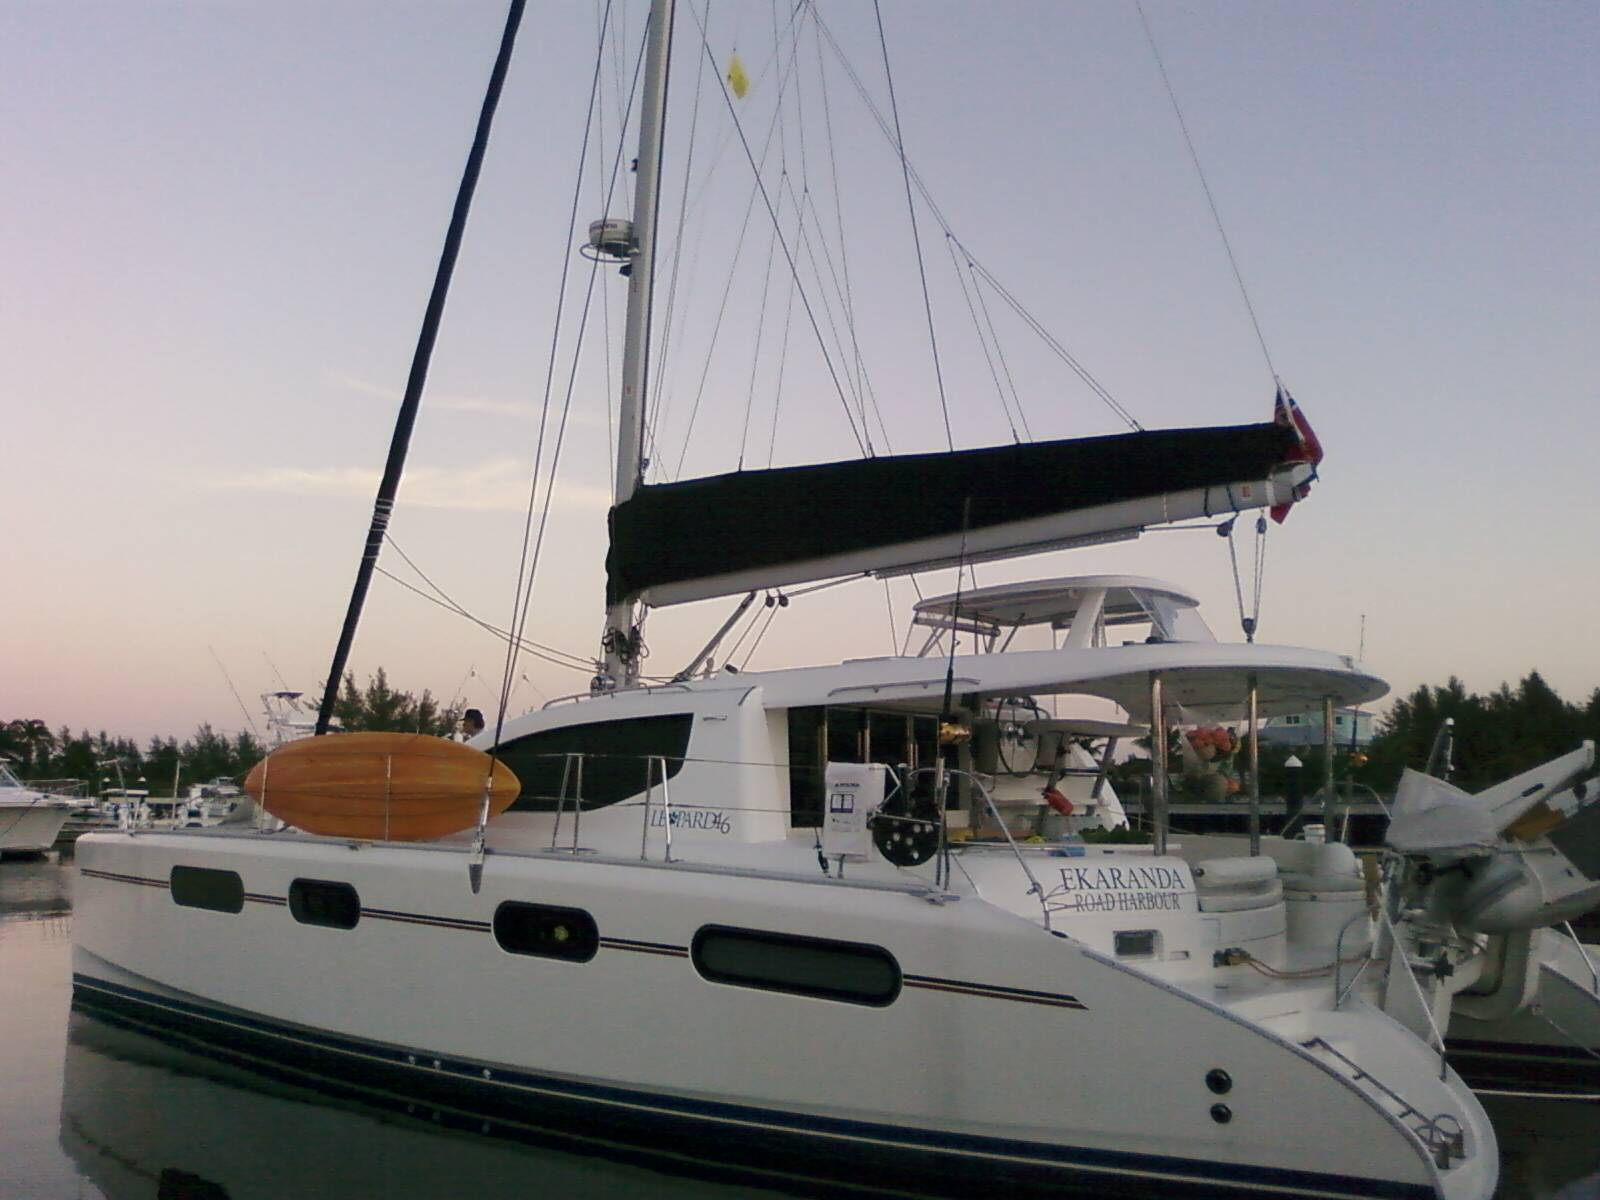 Sailing tour, Leopard 46'